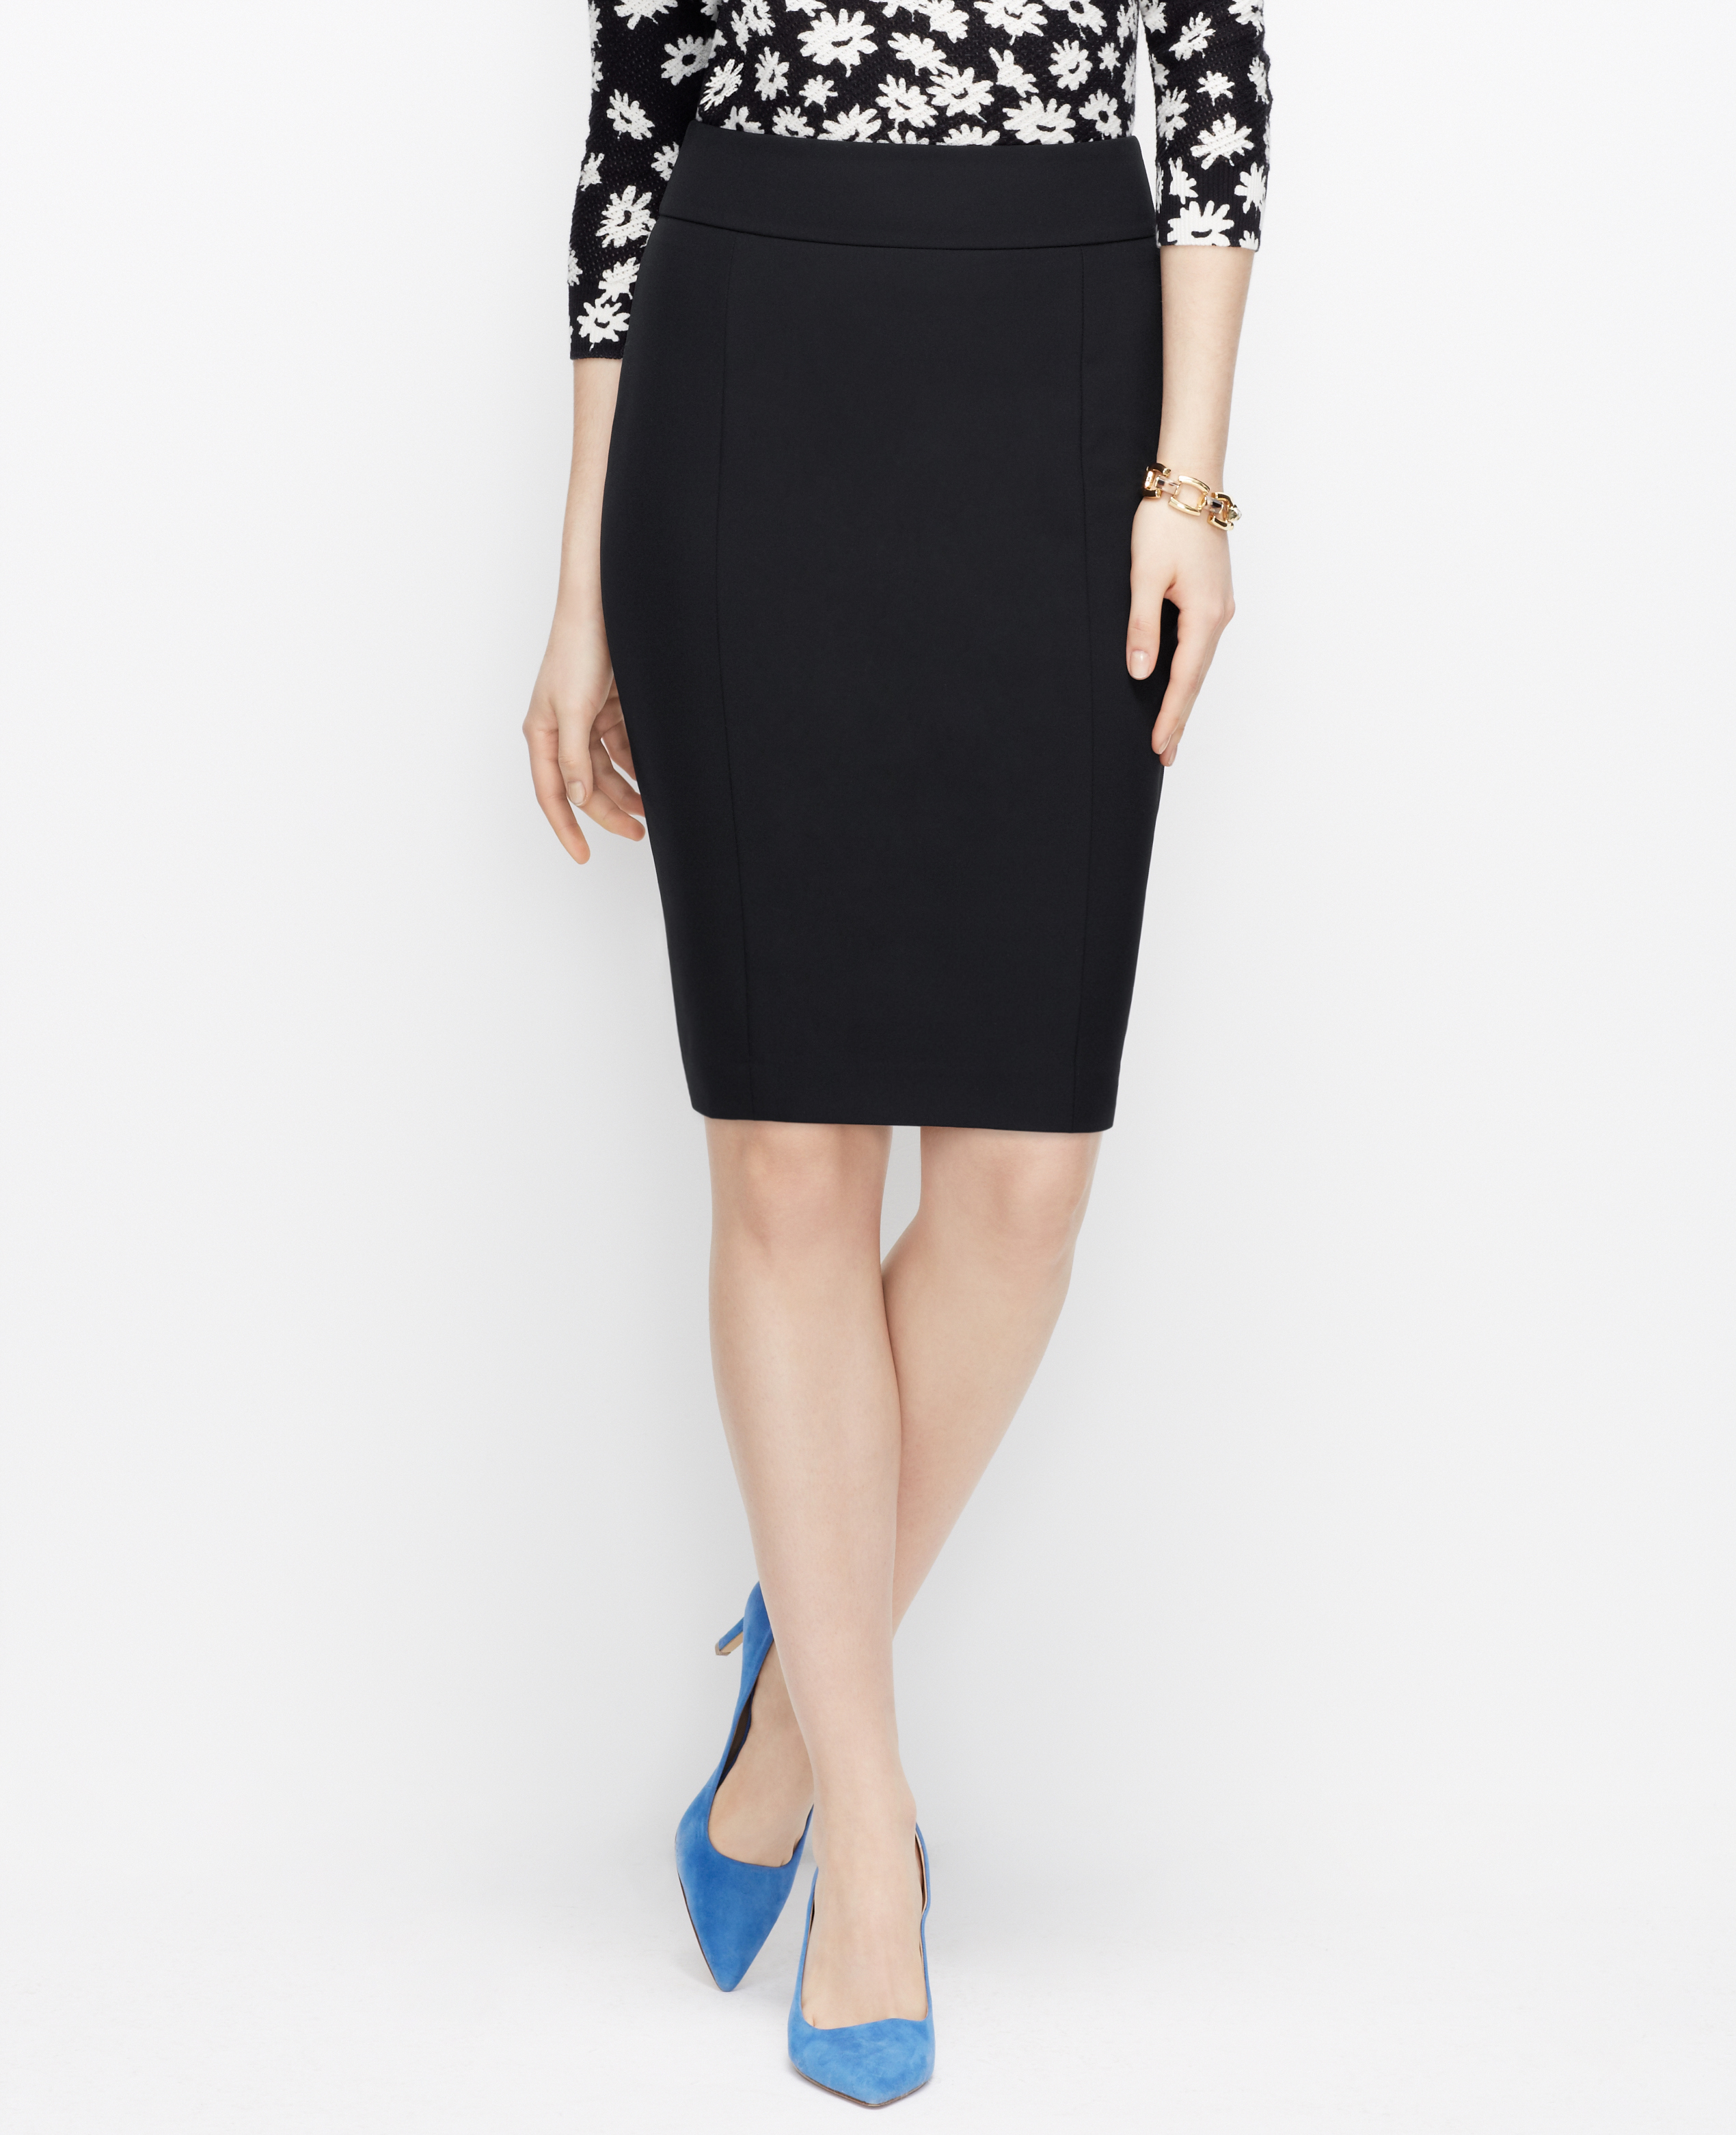 Ann taylor Curvy Sleek Stretch Pencil Skirt in Black | Lyst